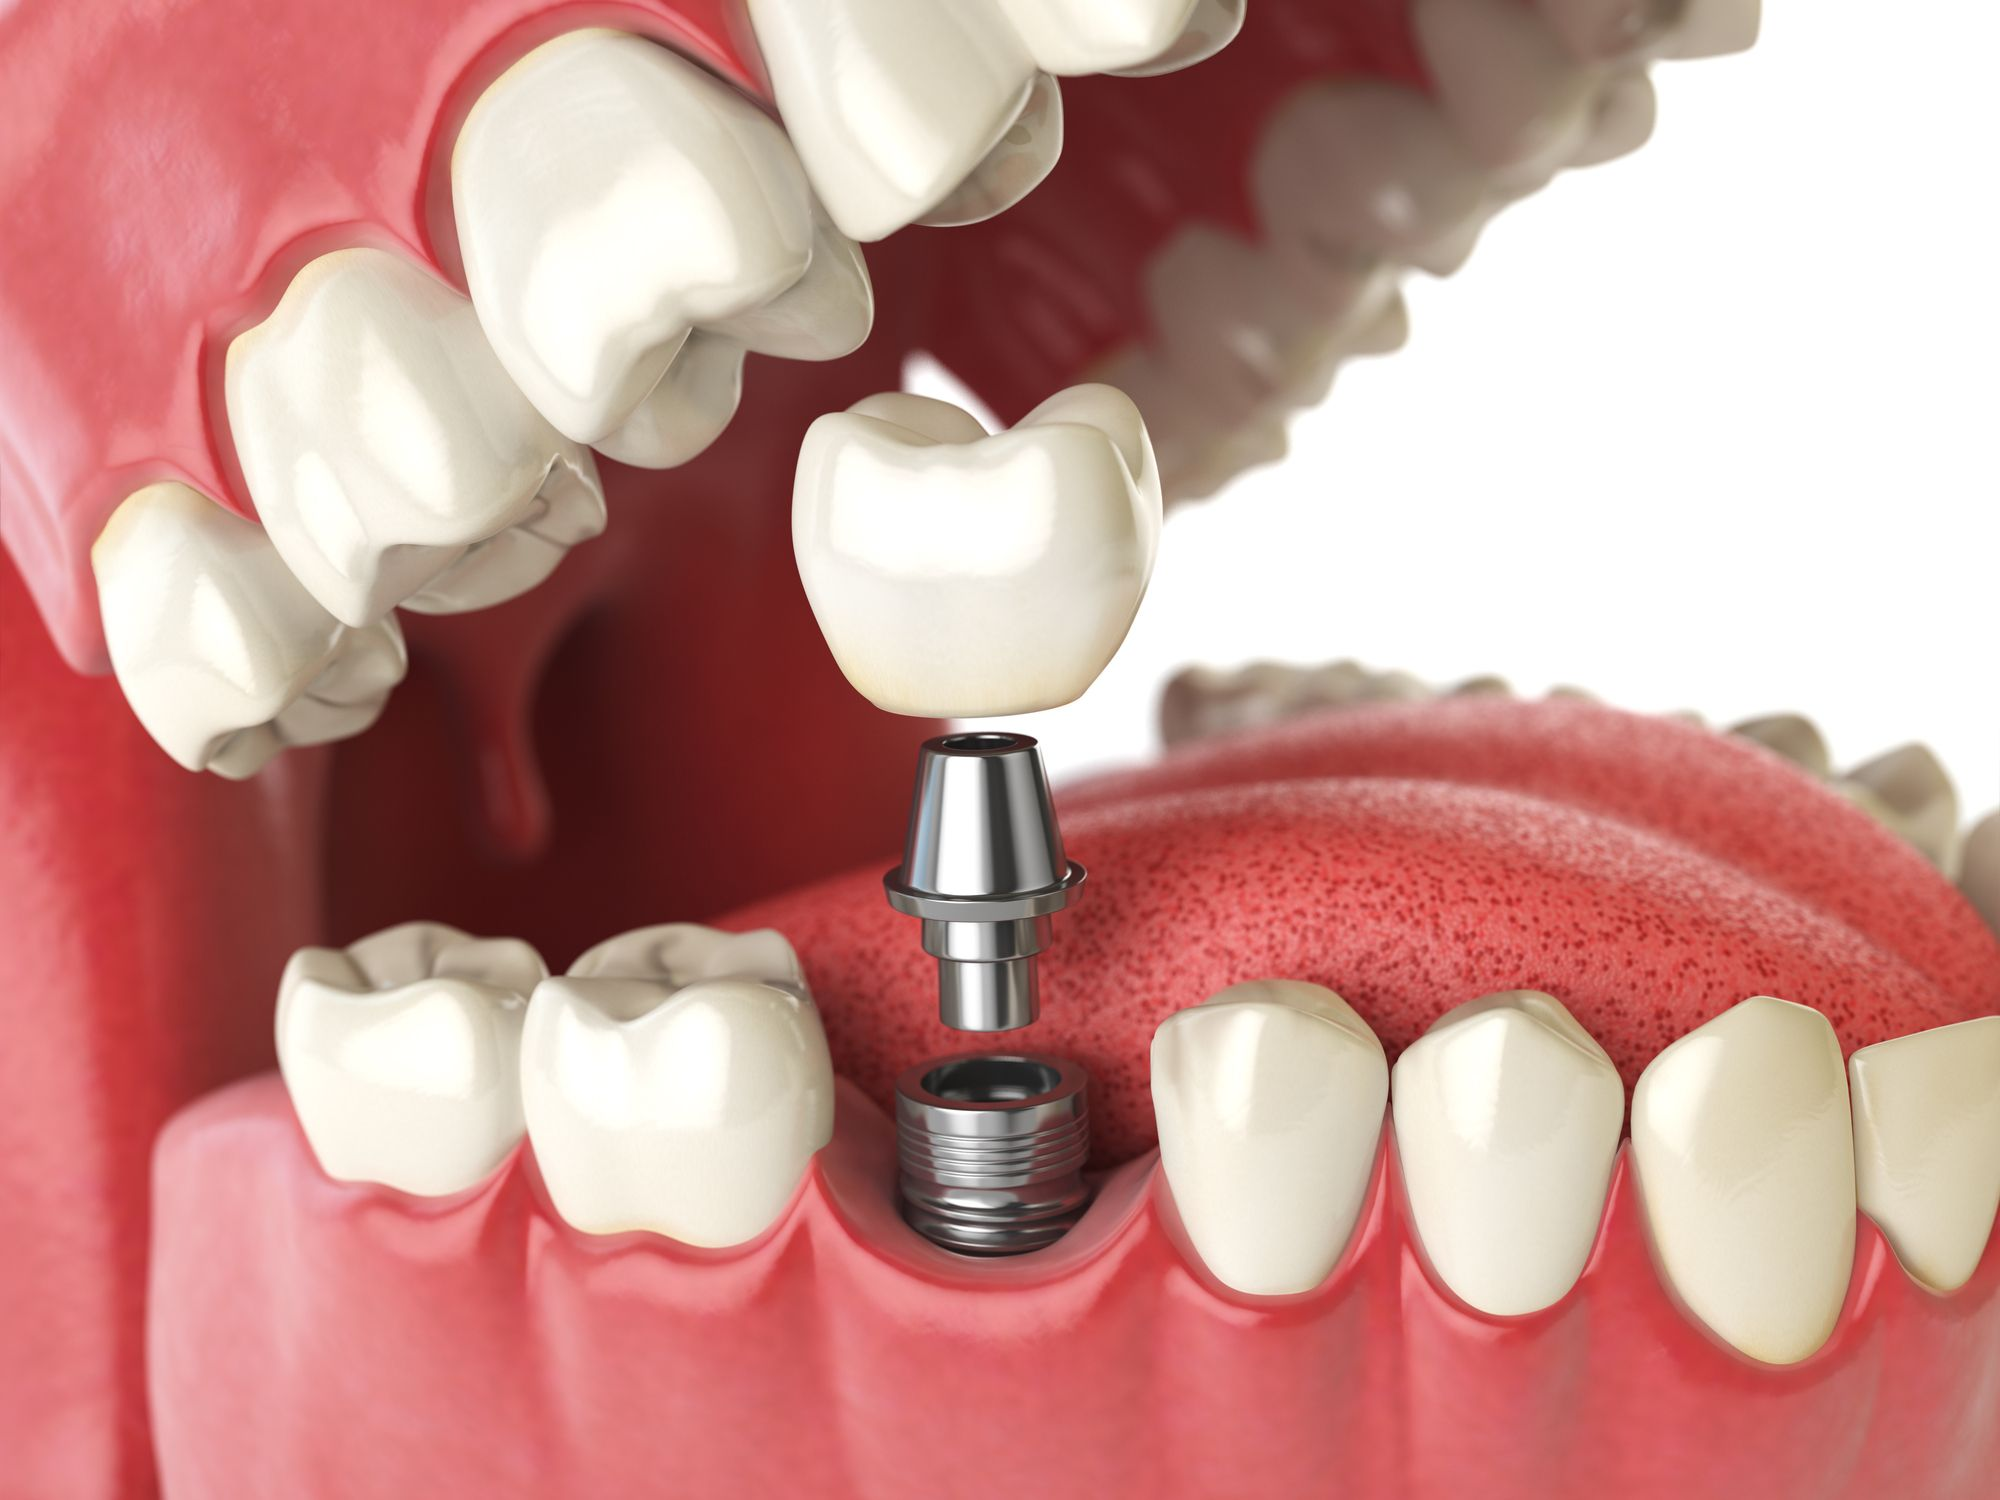 6 Tips for Taking Care of Your Dental Implants